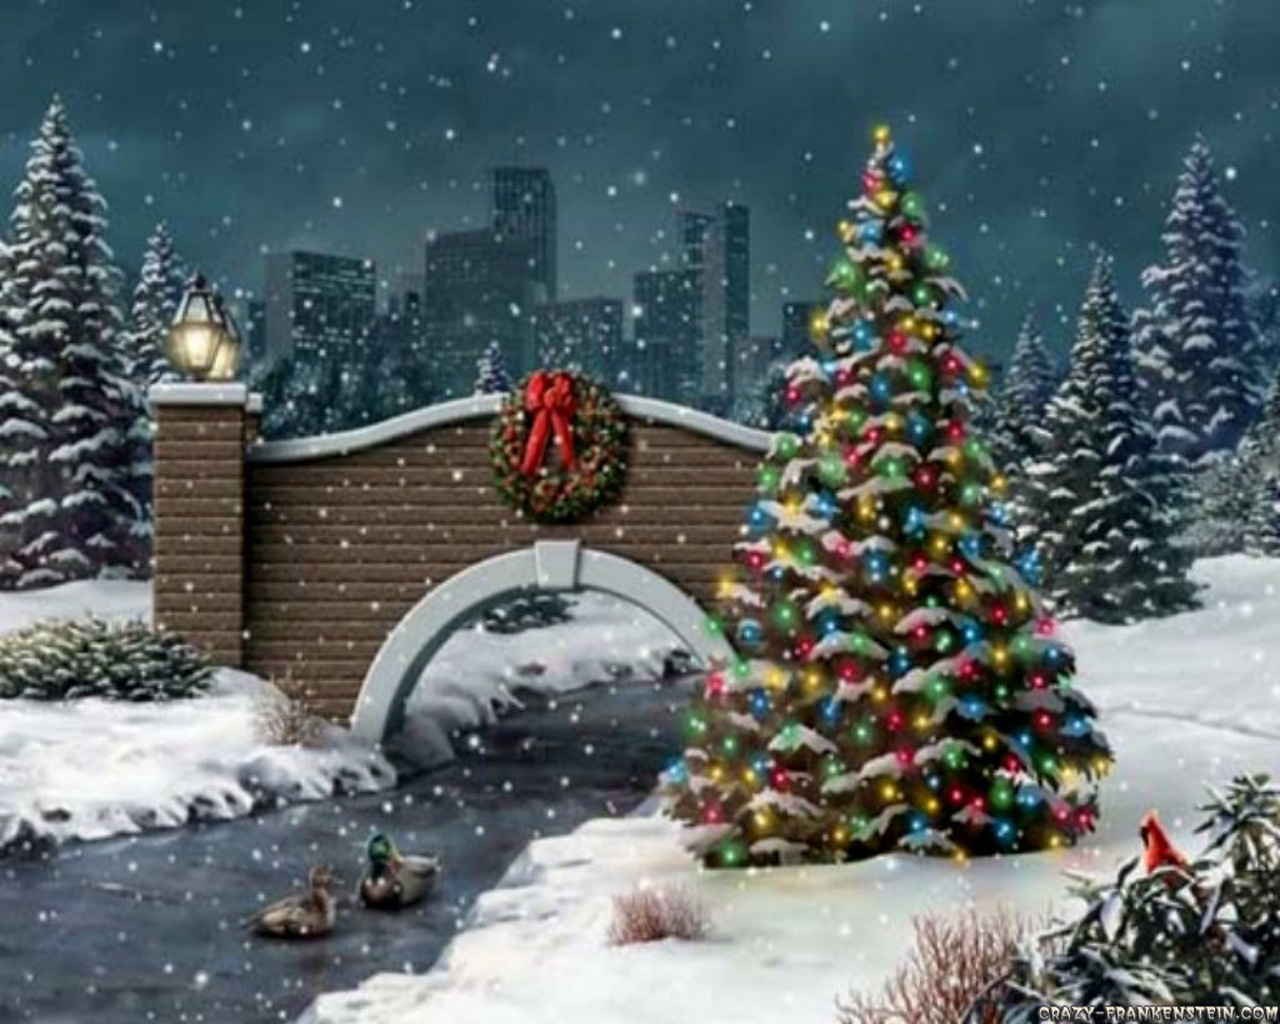 Christmas images Christmas Time HD wallpaper and background photos ...